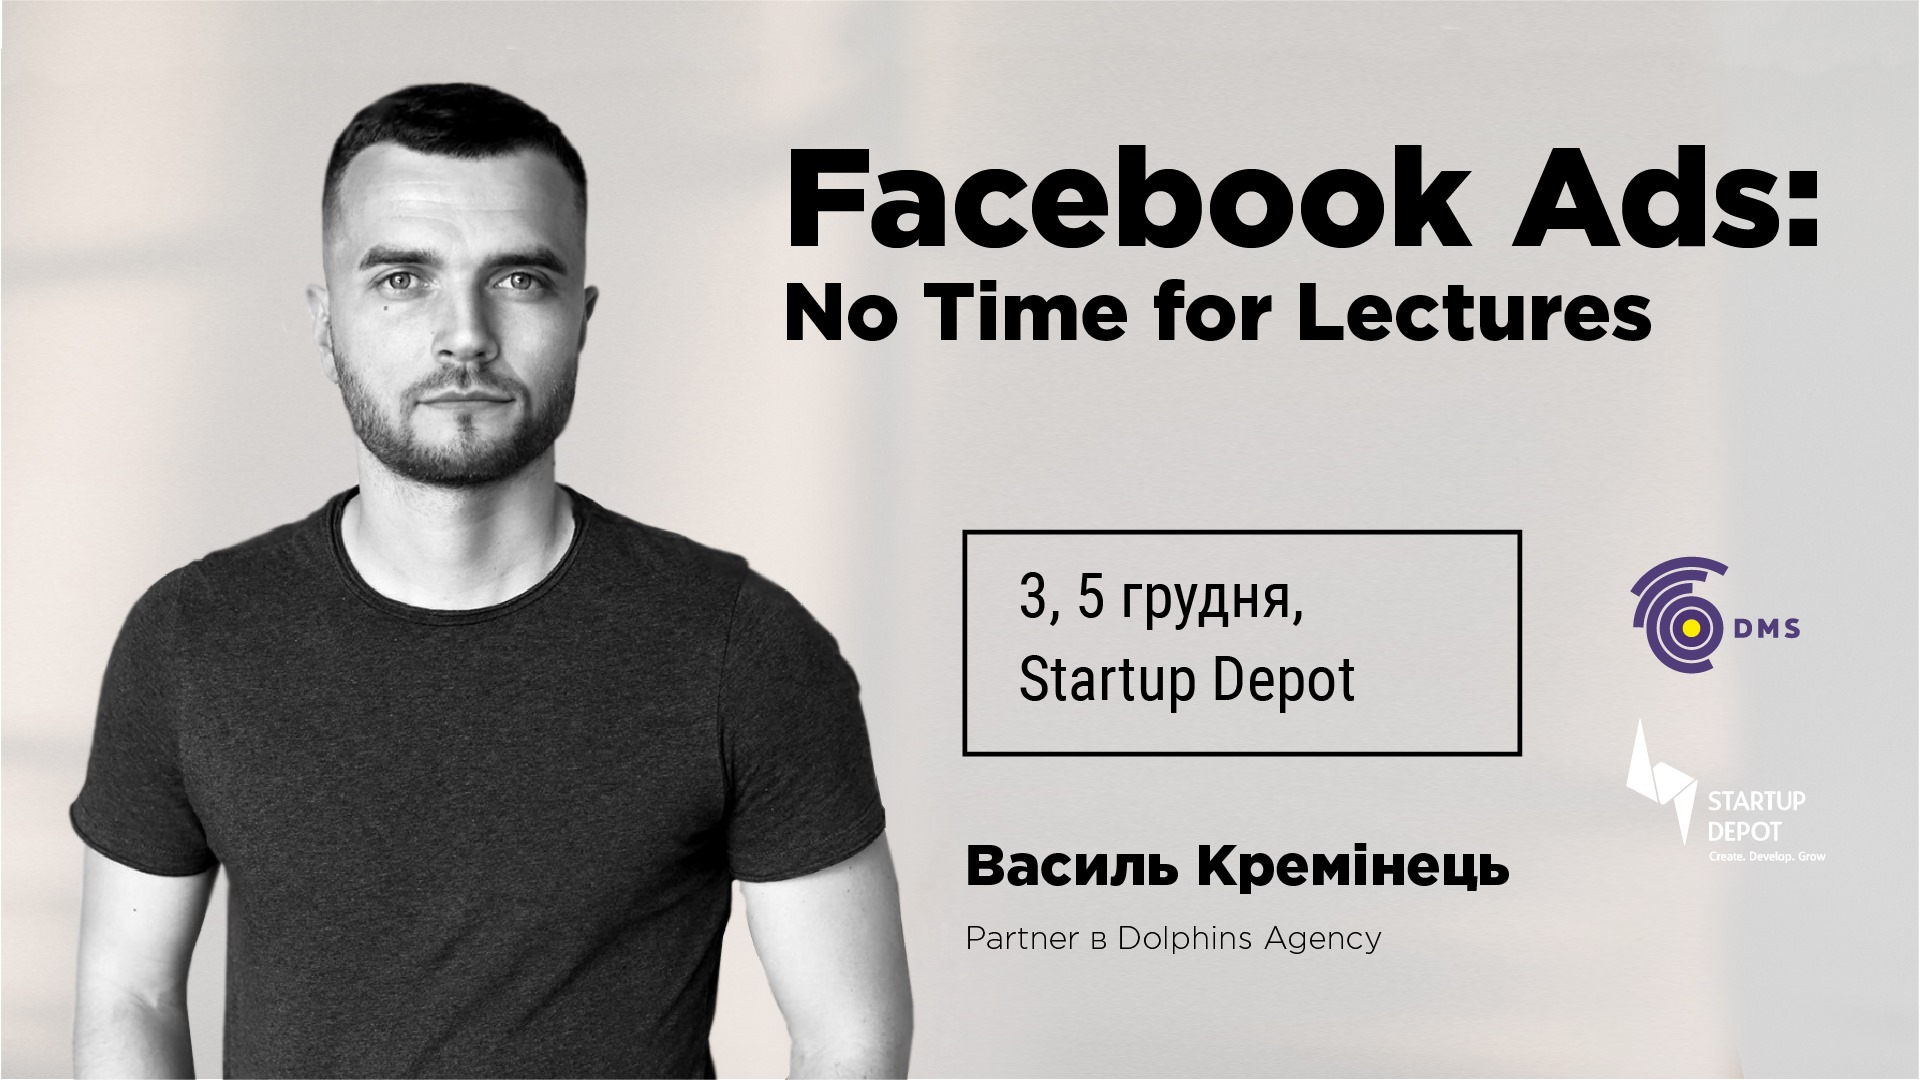 Facebook Ads: No Time for Lectures